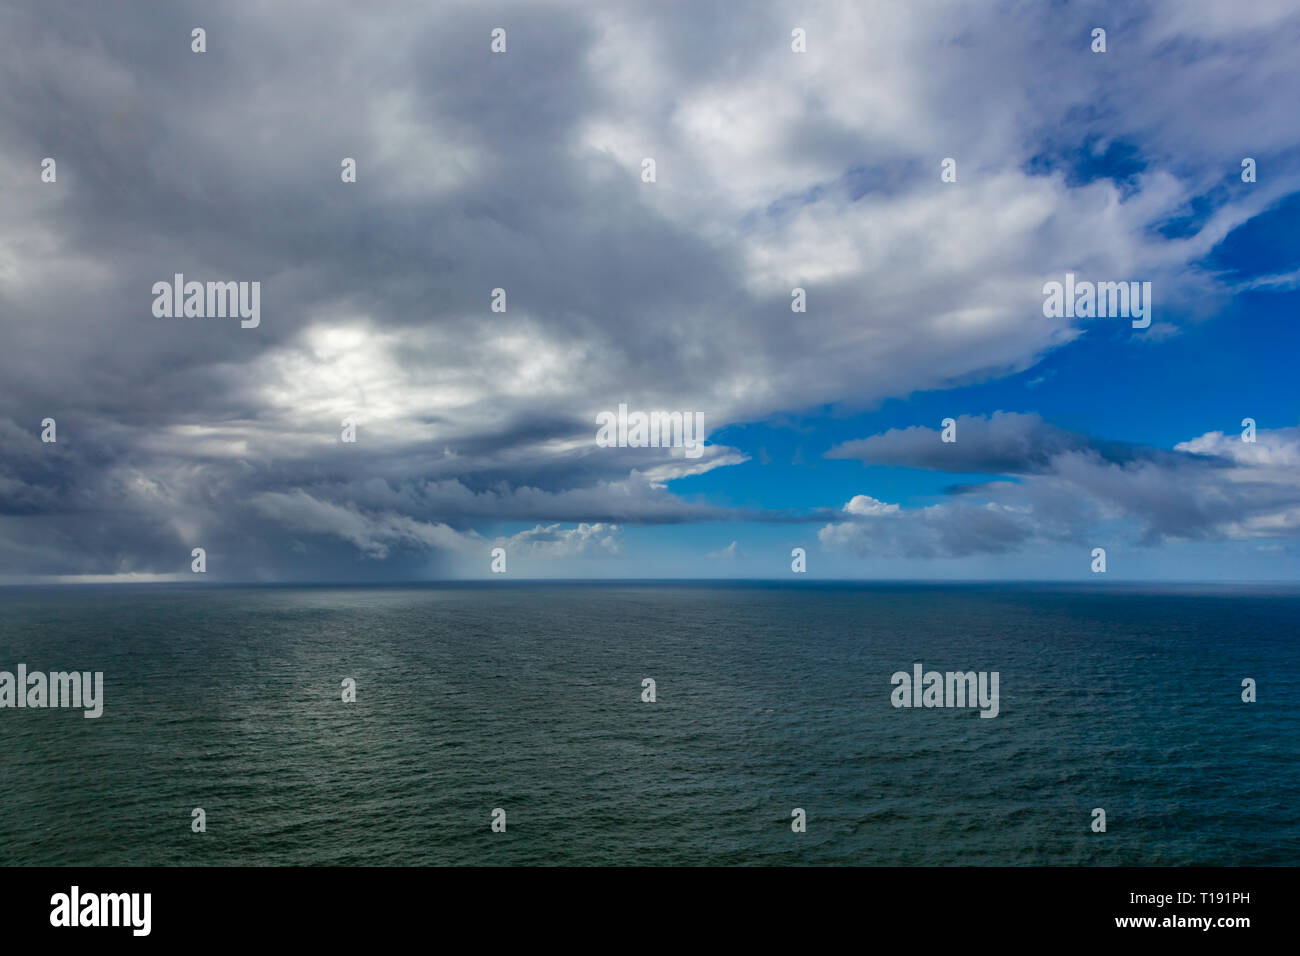 Calm flat ocean view with clouds and blue sky - Stock Image